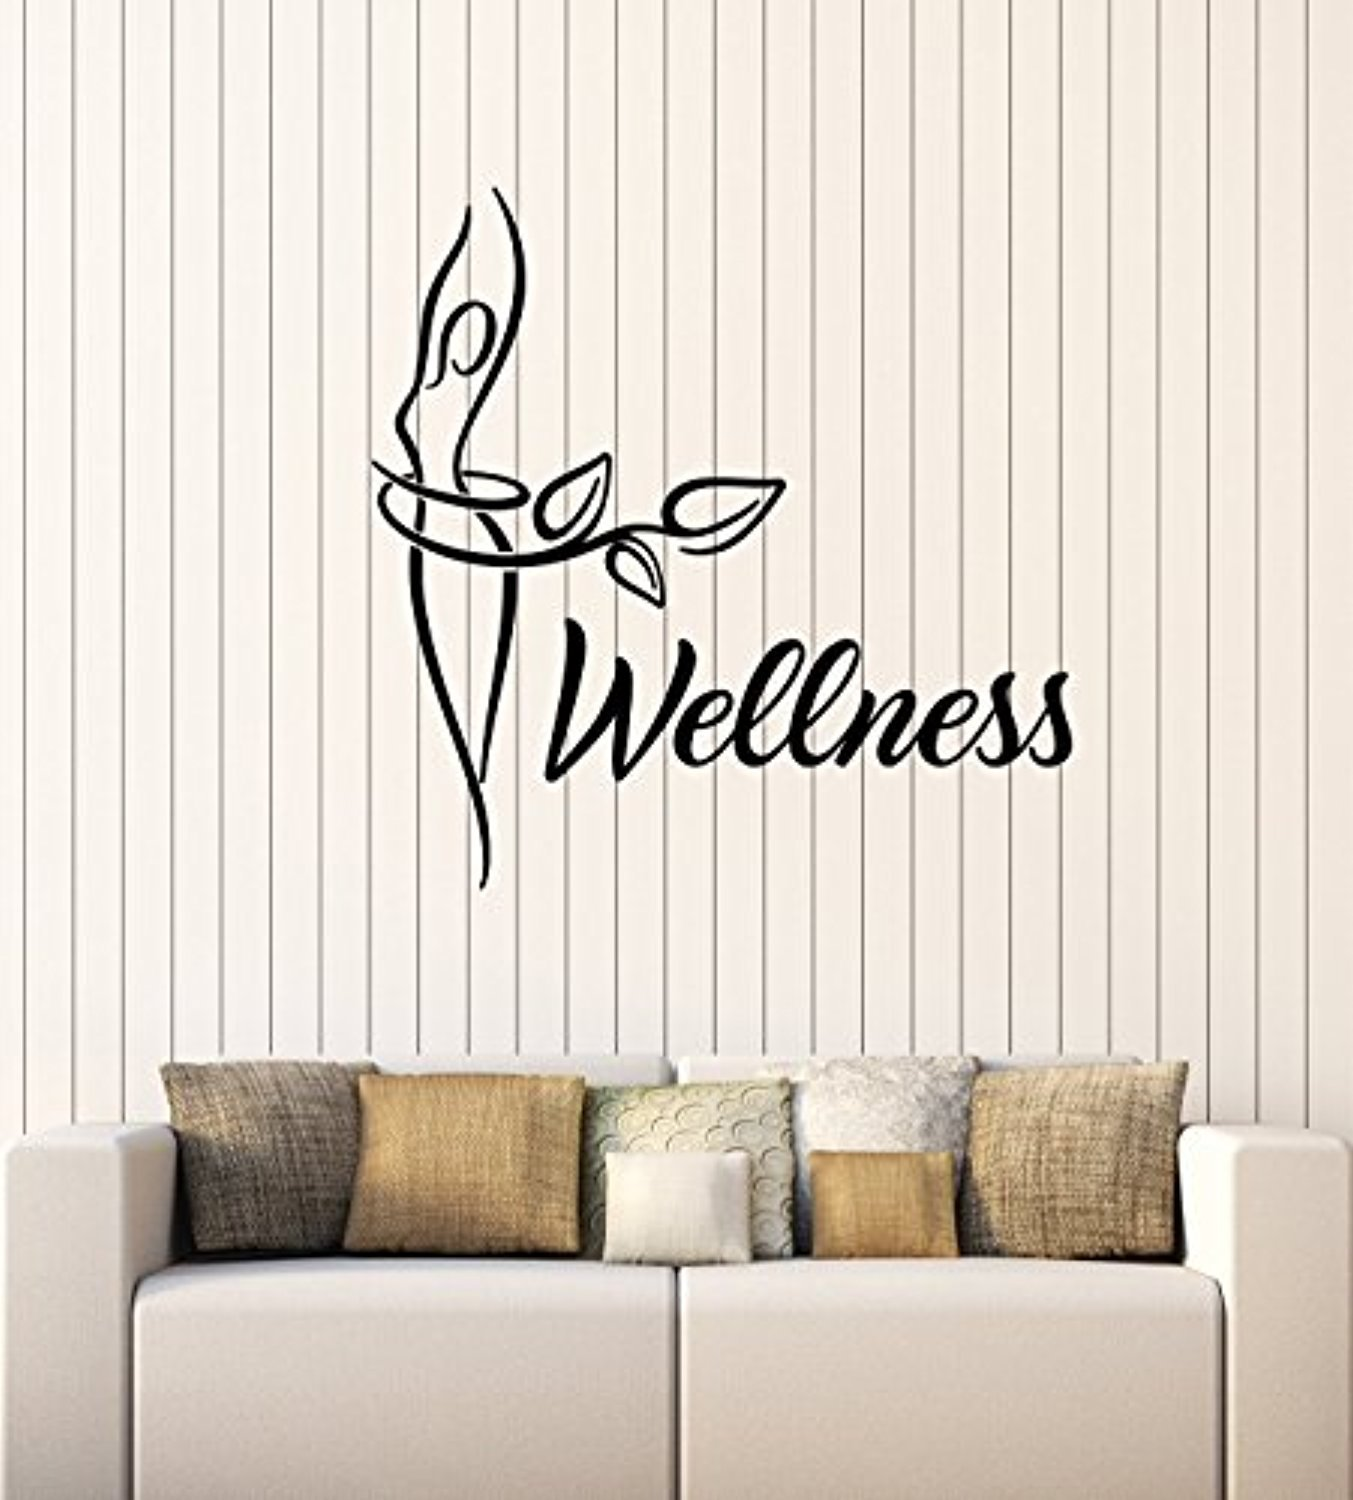 Art of Decals Wellness Vinyl Wall Decal Center Spa Beauty Salon Healthy Lifestyle Diet Stickers Mural Large Decor 309